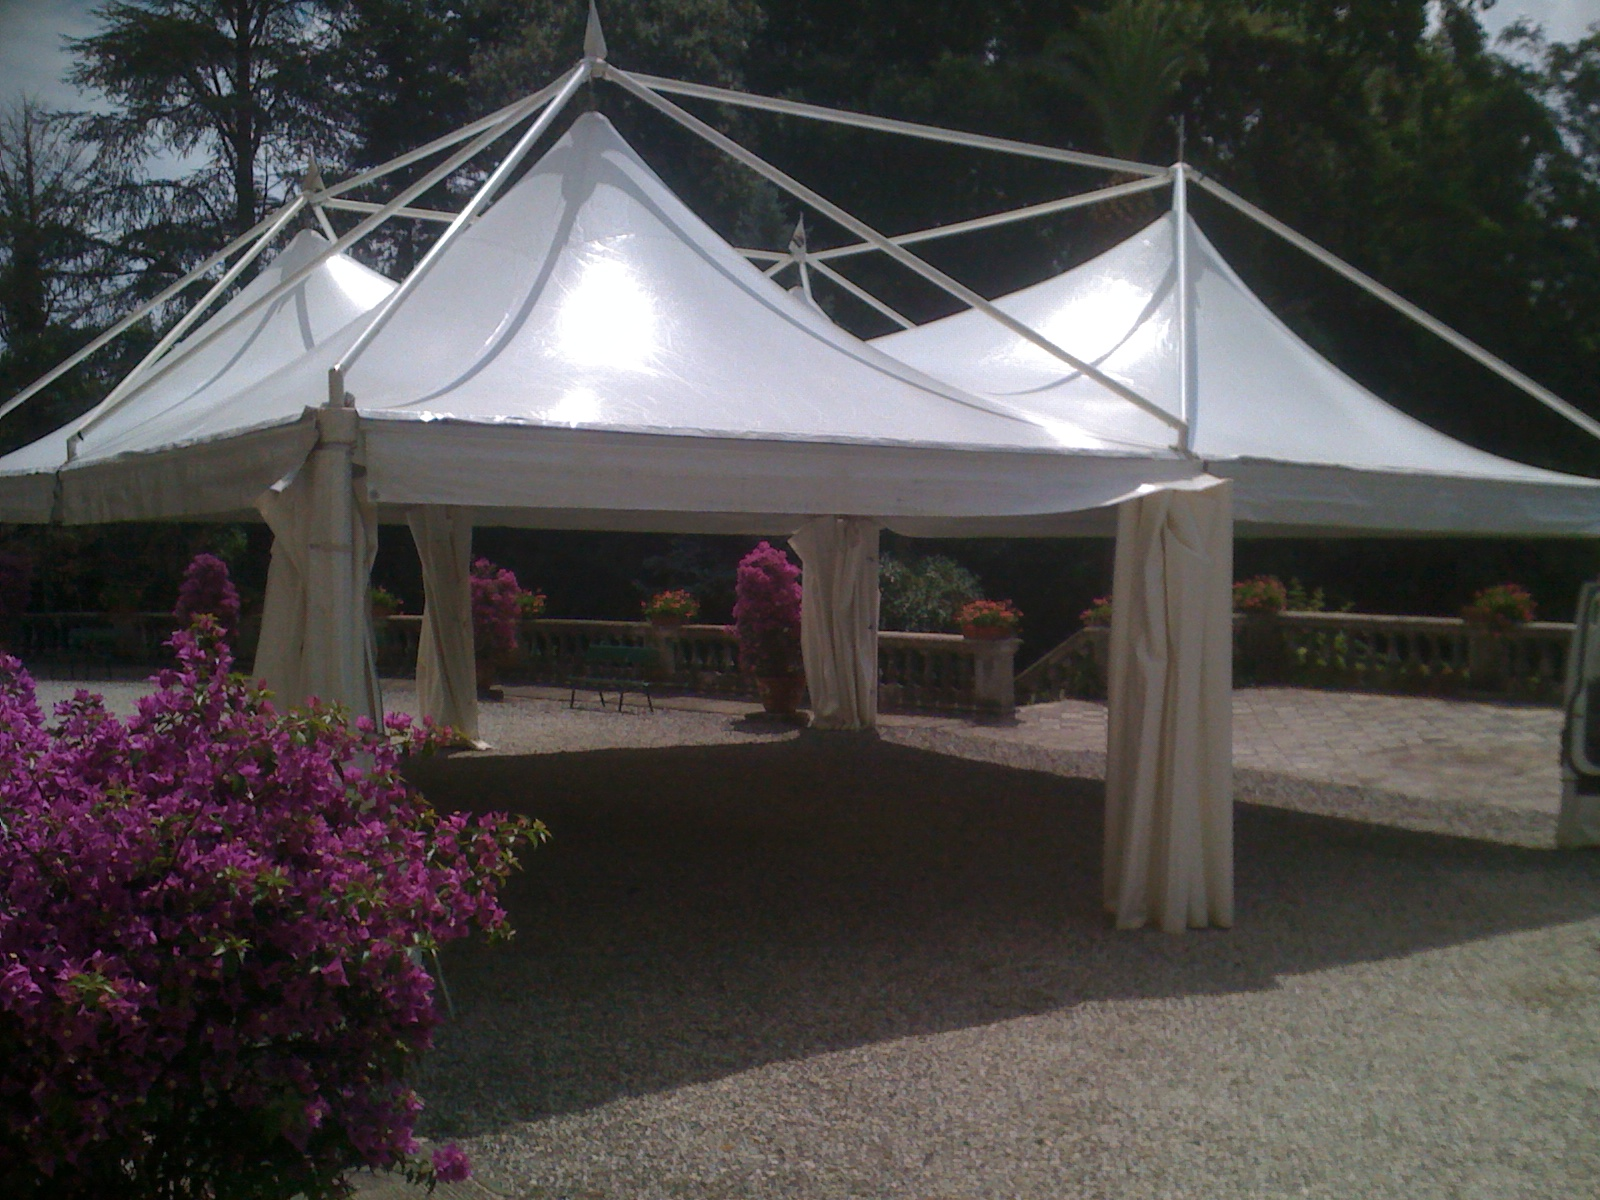 Rental and sale of second-hand tensile structures and gazebos